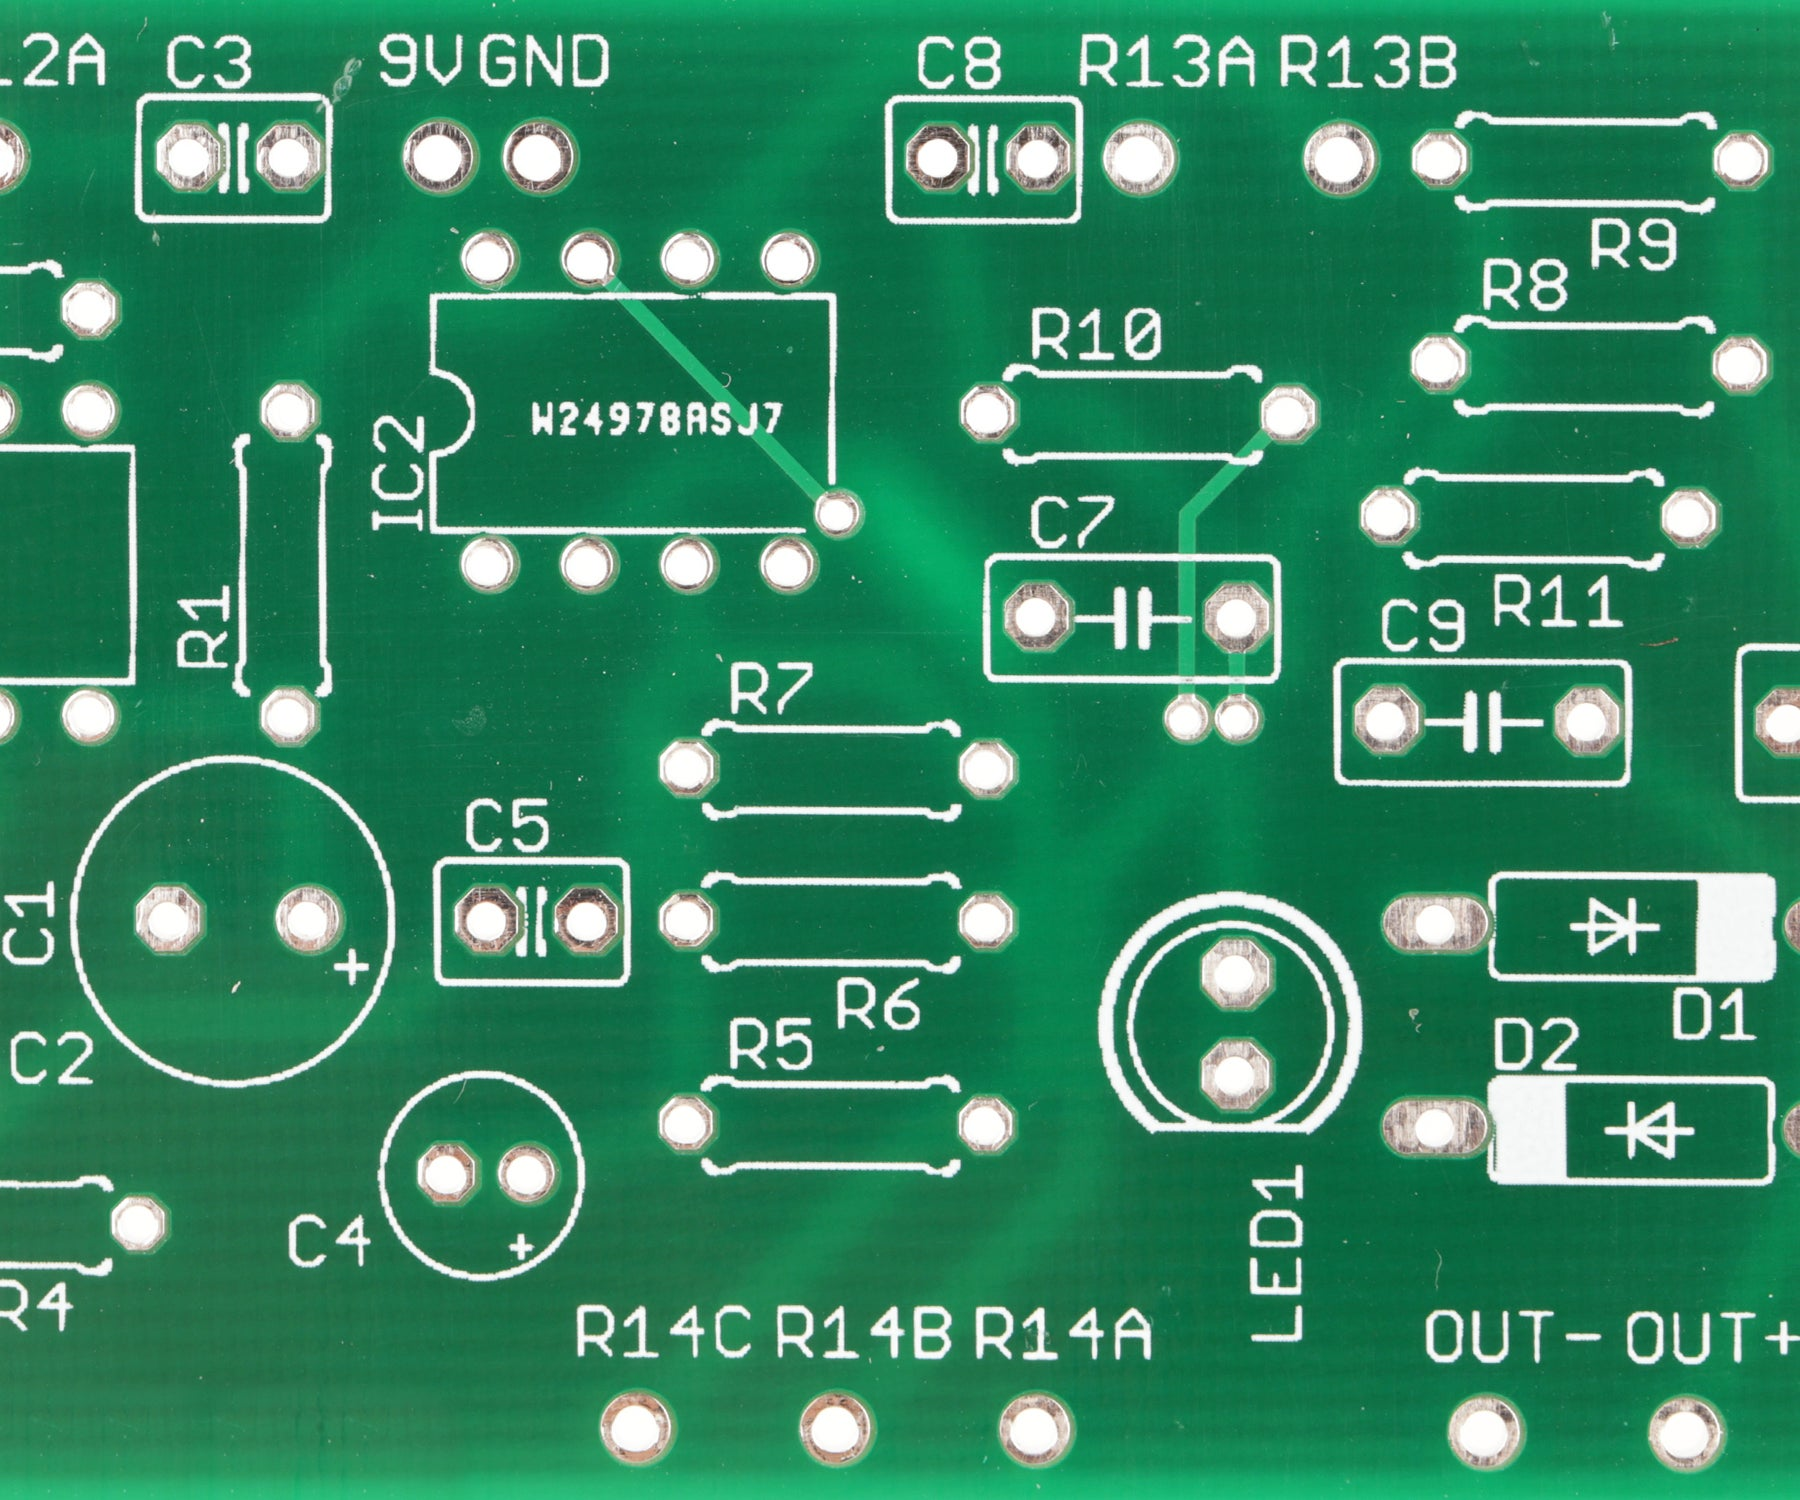 Simple Electric Circuits For Students The Circuit Can Be Assembled Free Online Board Design Class